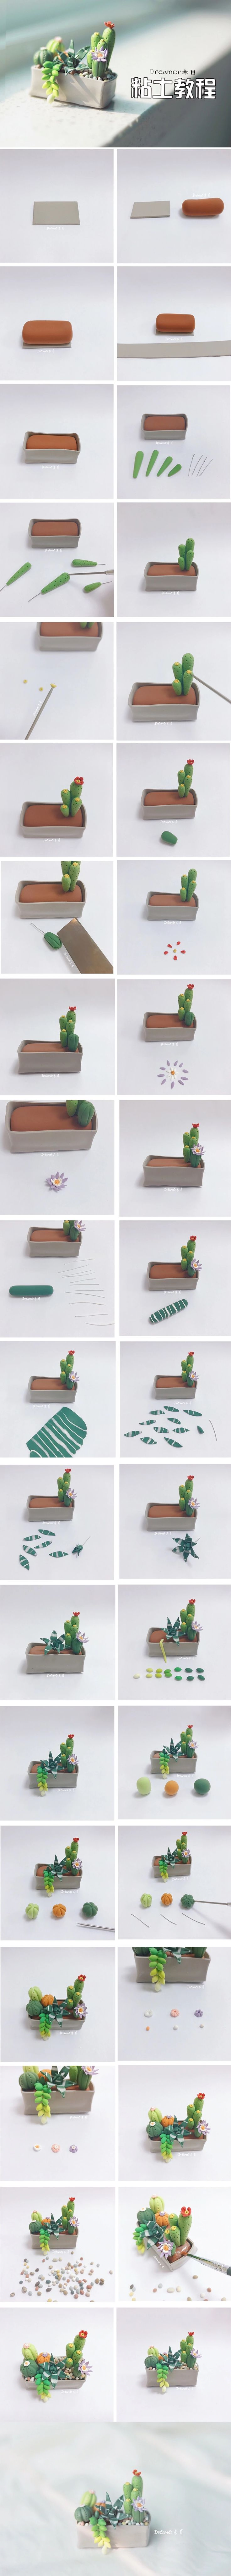 These are some of the best cactus I've seen I'm trying to make this now except with my own personal touch